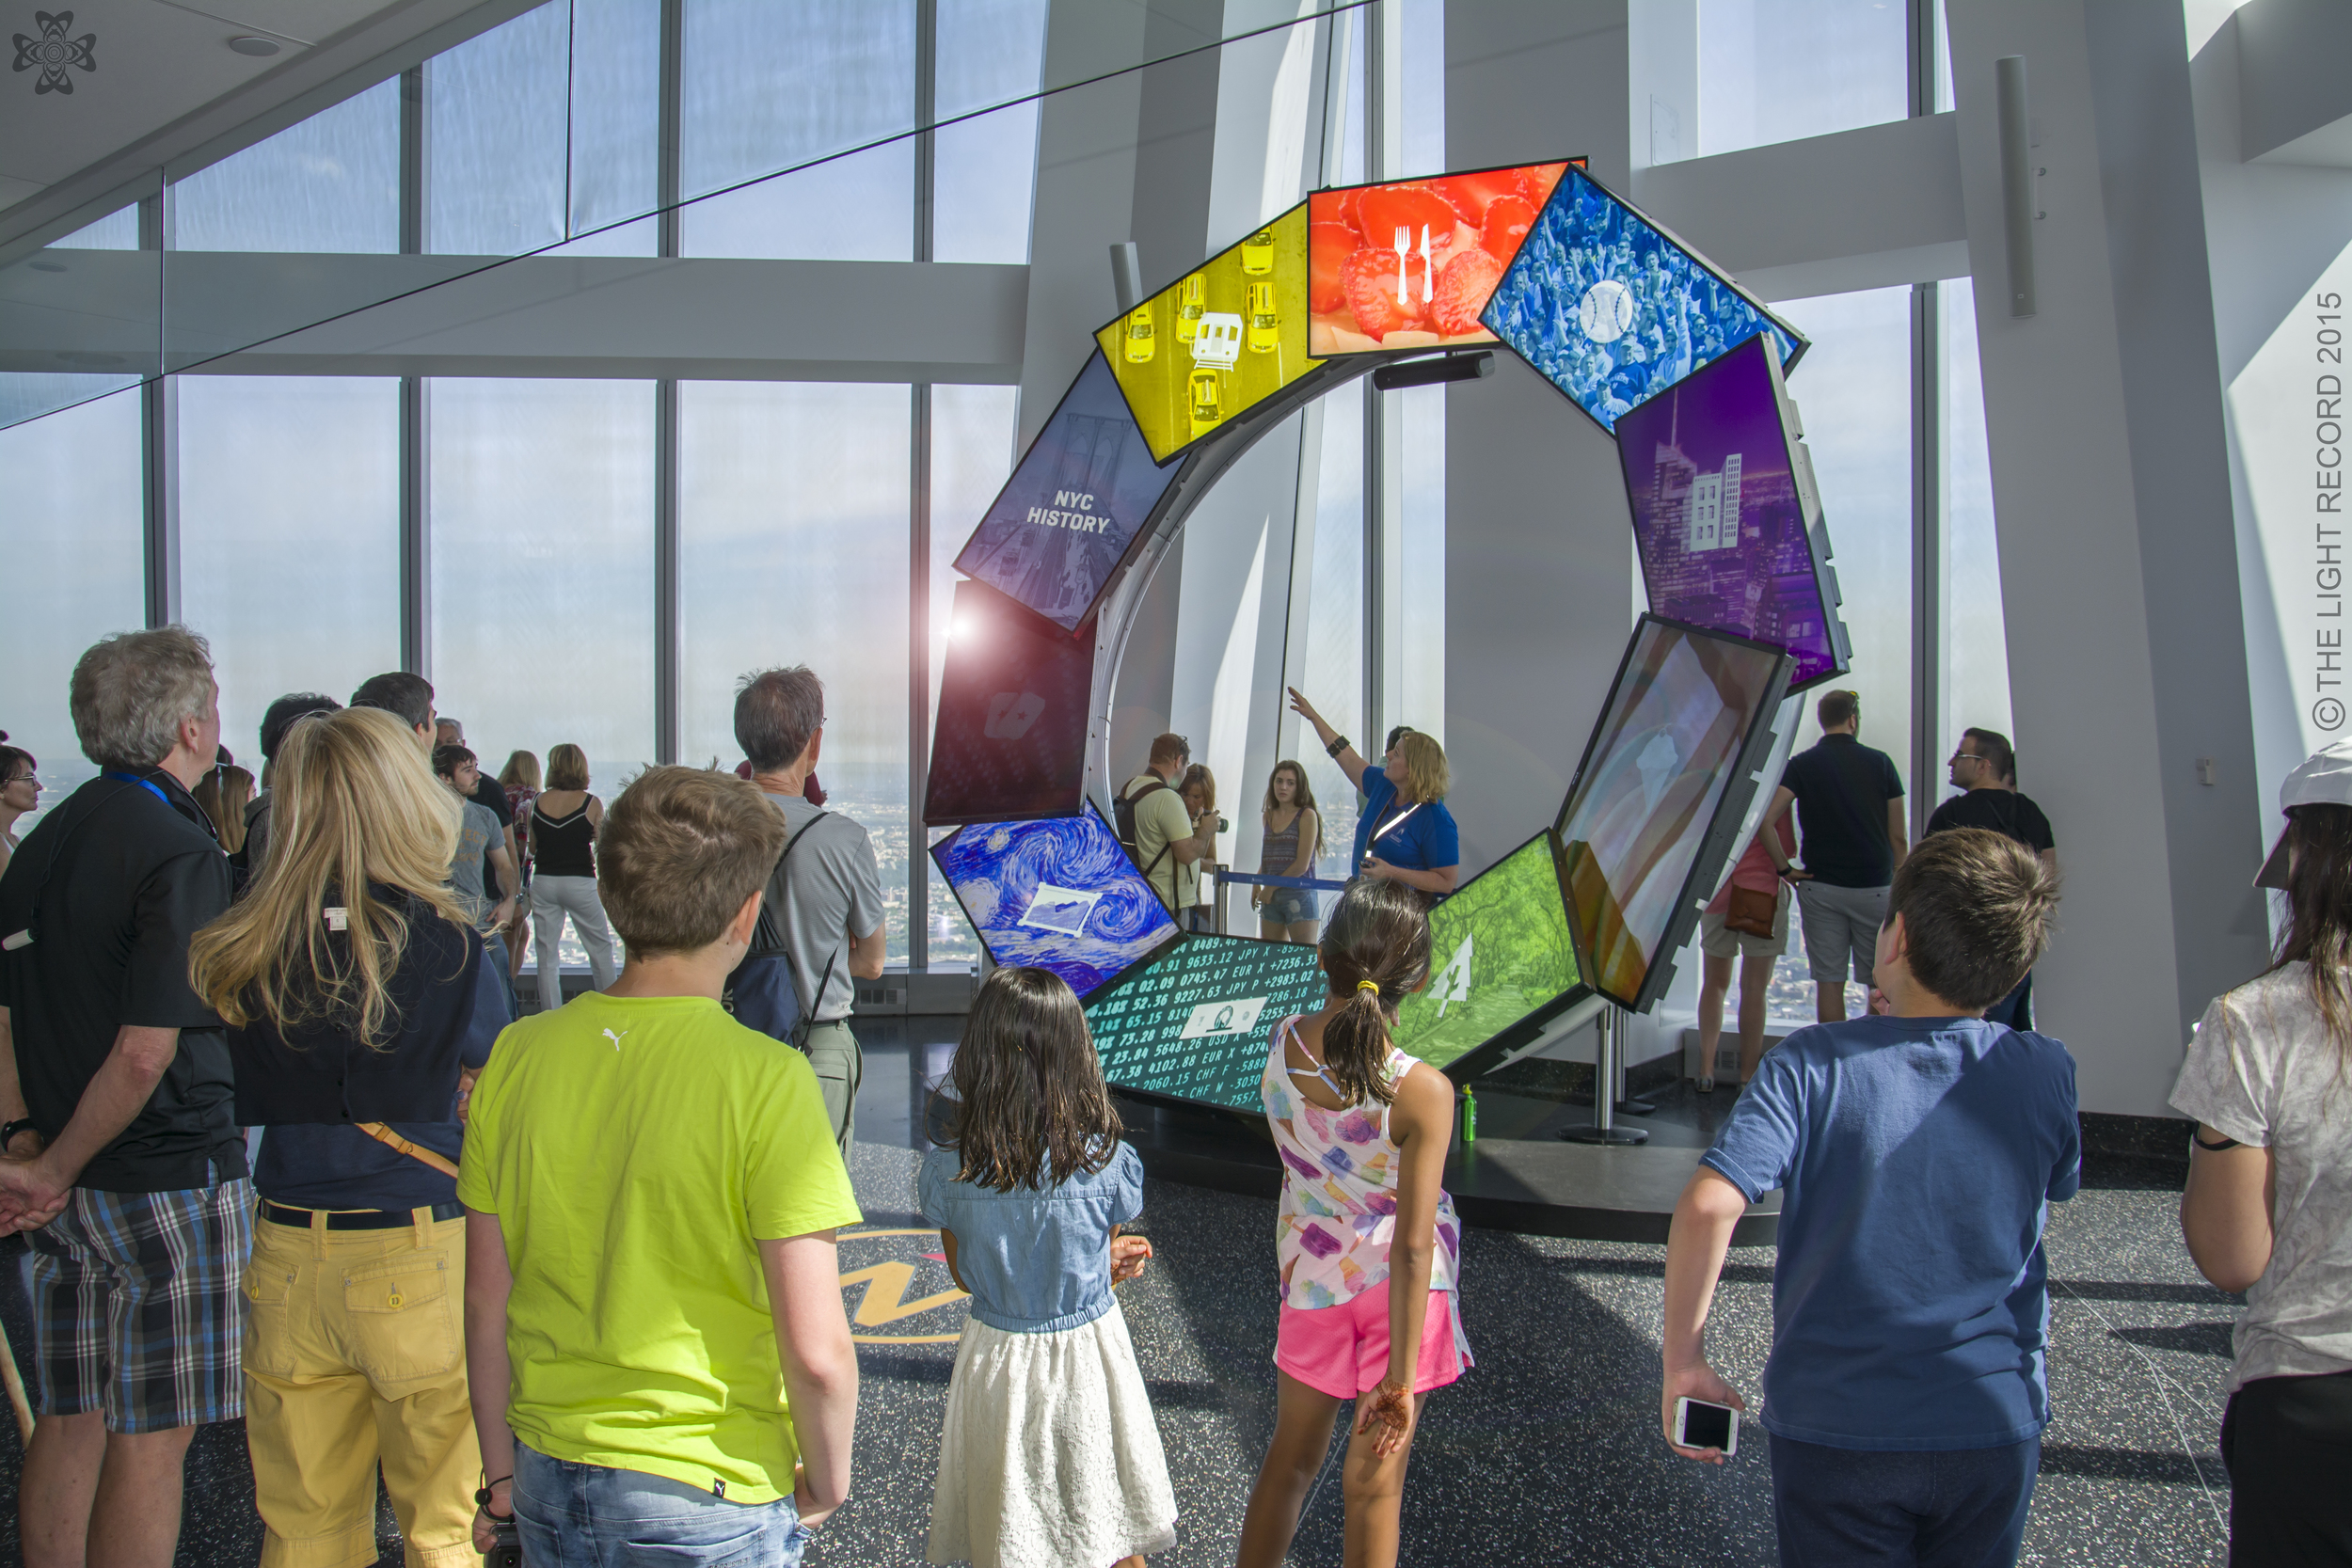 Kids and adults alike soak up facts on a Thursday morning at One World Observatory.